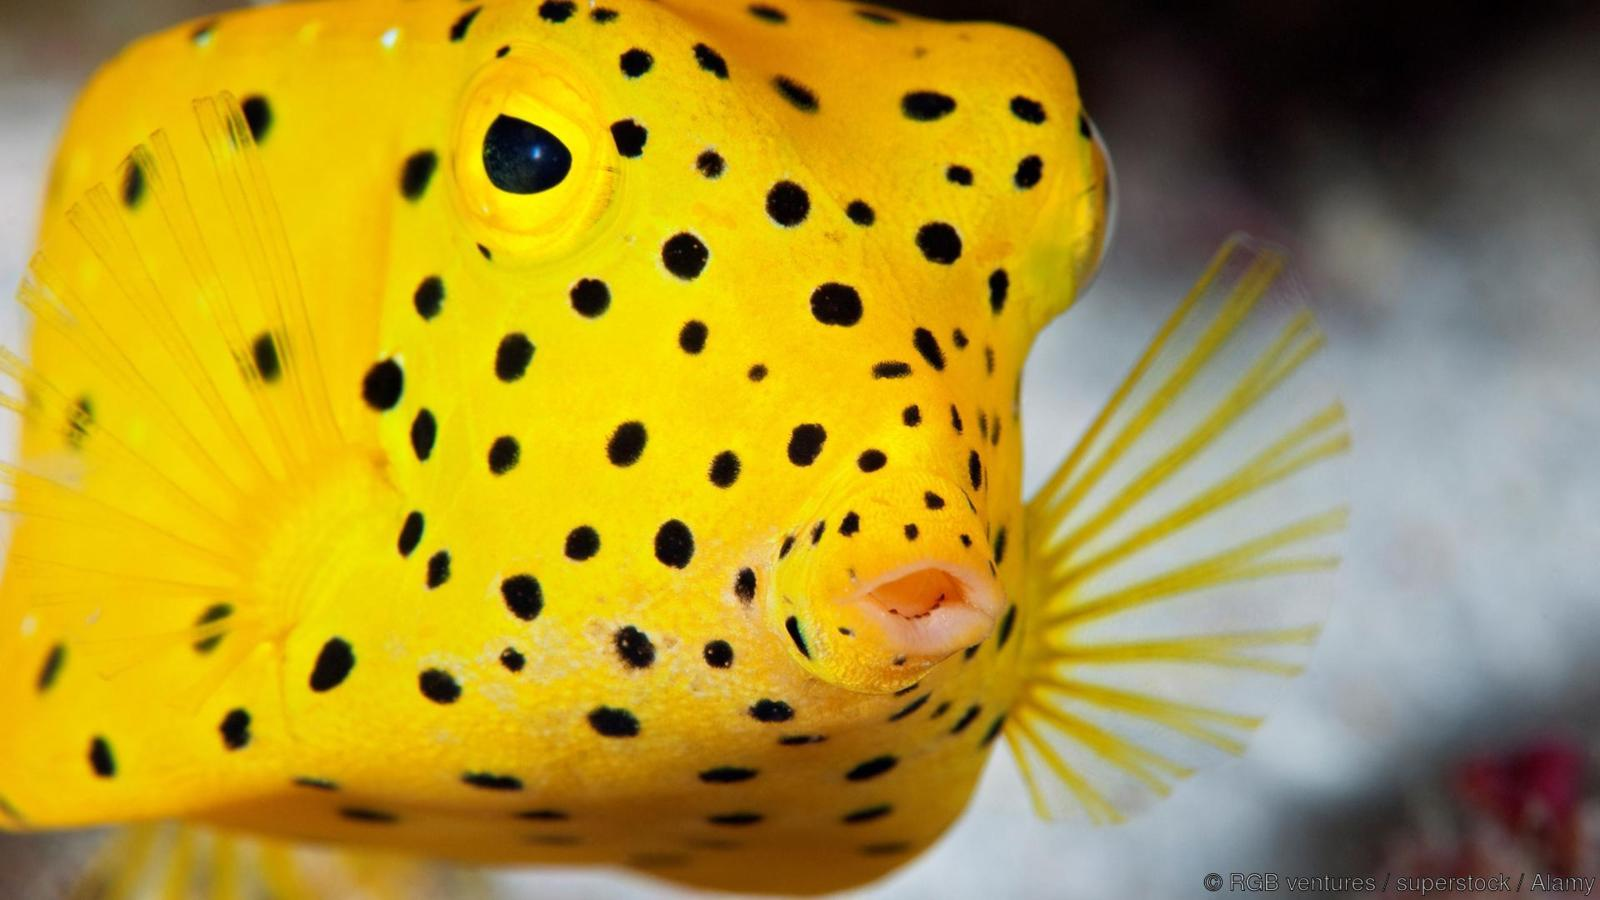 A juvenile yellow boxfish (Ostracion cubicus) in the Maldives. Only while juvenile is the fish this bright yellow.